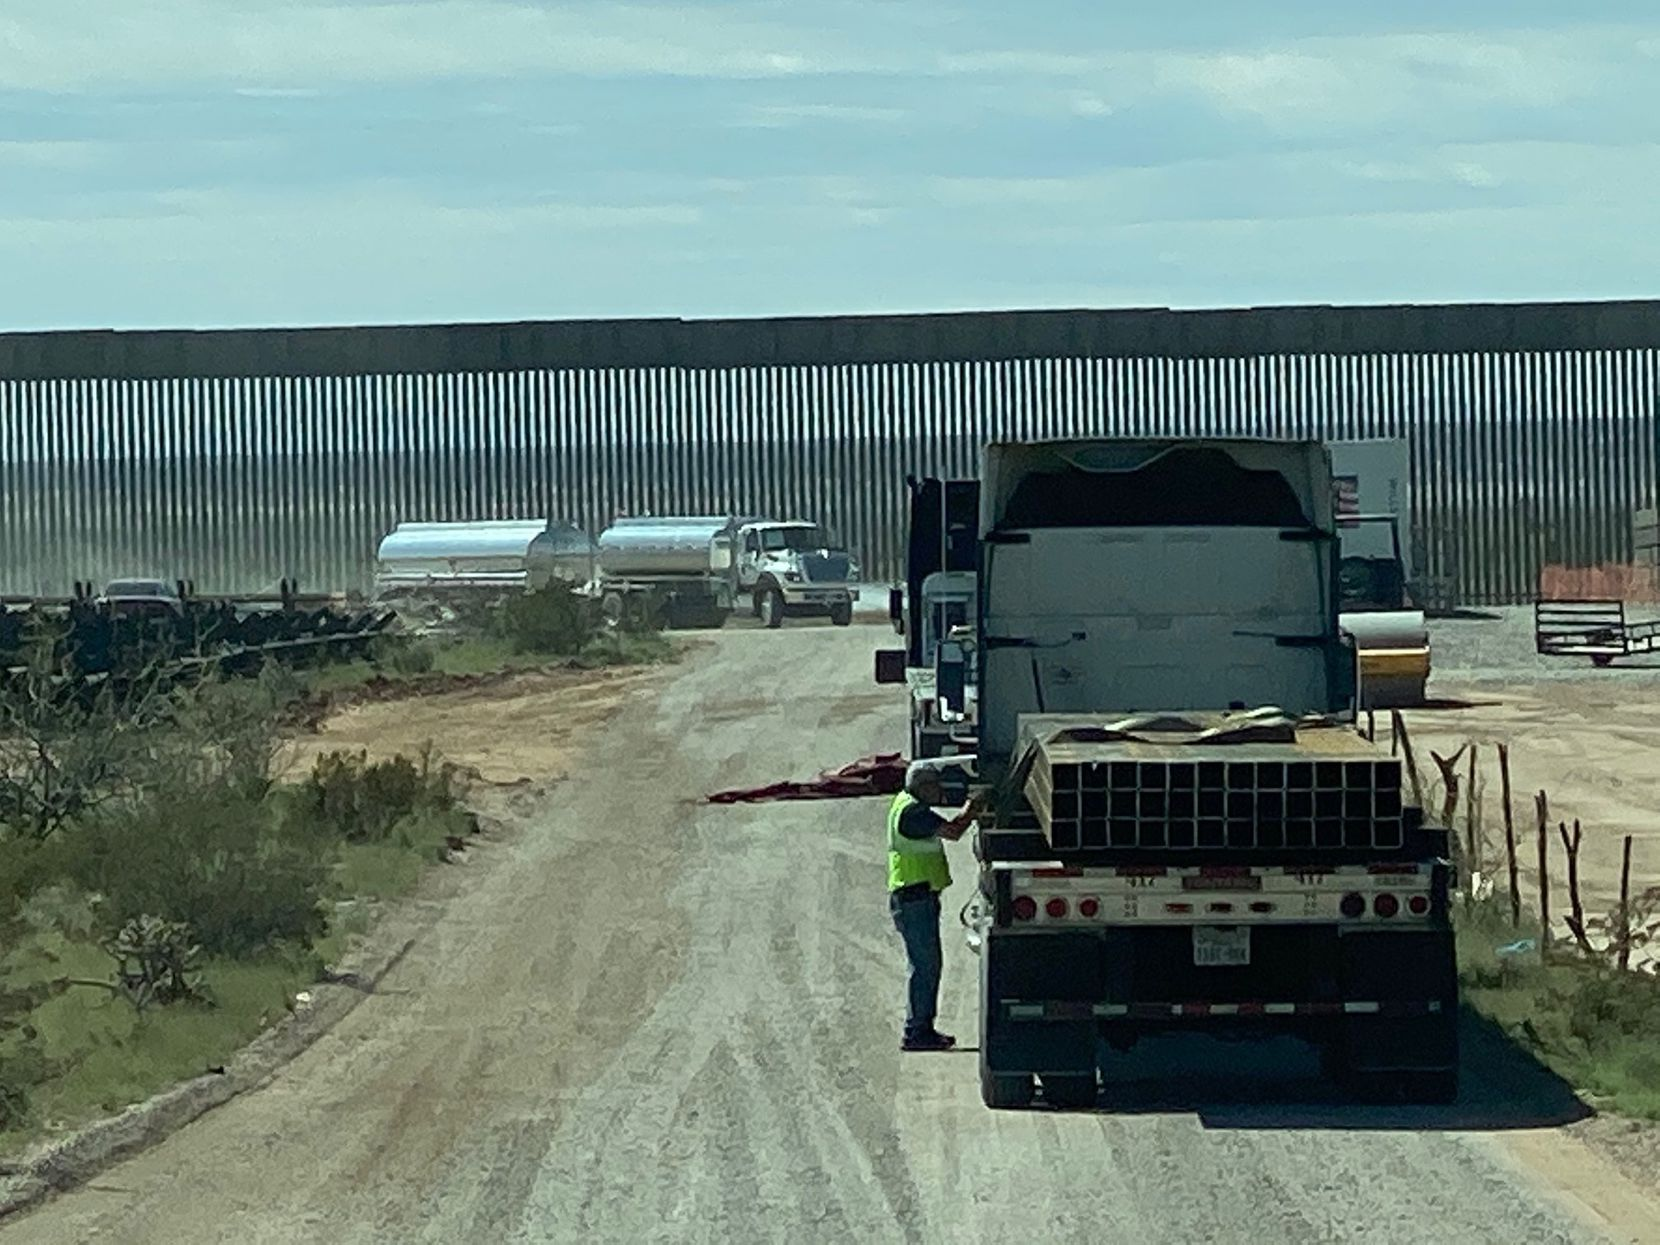 Truckers lined up near the wall construction site April 1 near Columbus, N.M. Truckers and other workers expressed mixed feelings about wall construction amid the coronavirus pandemic.